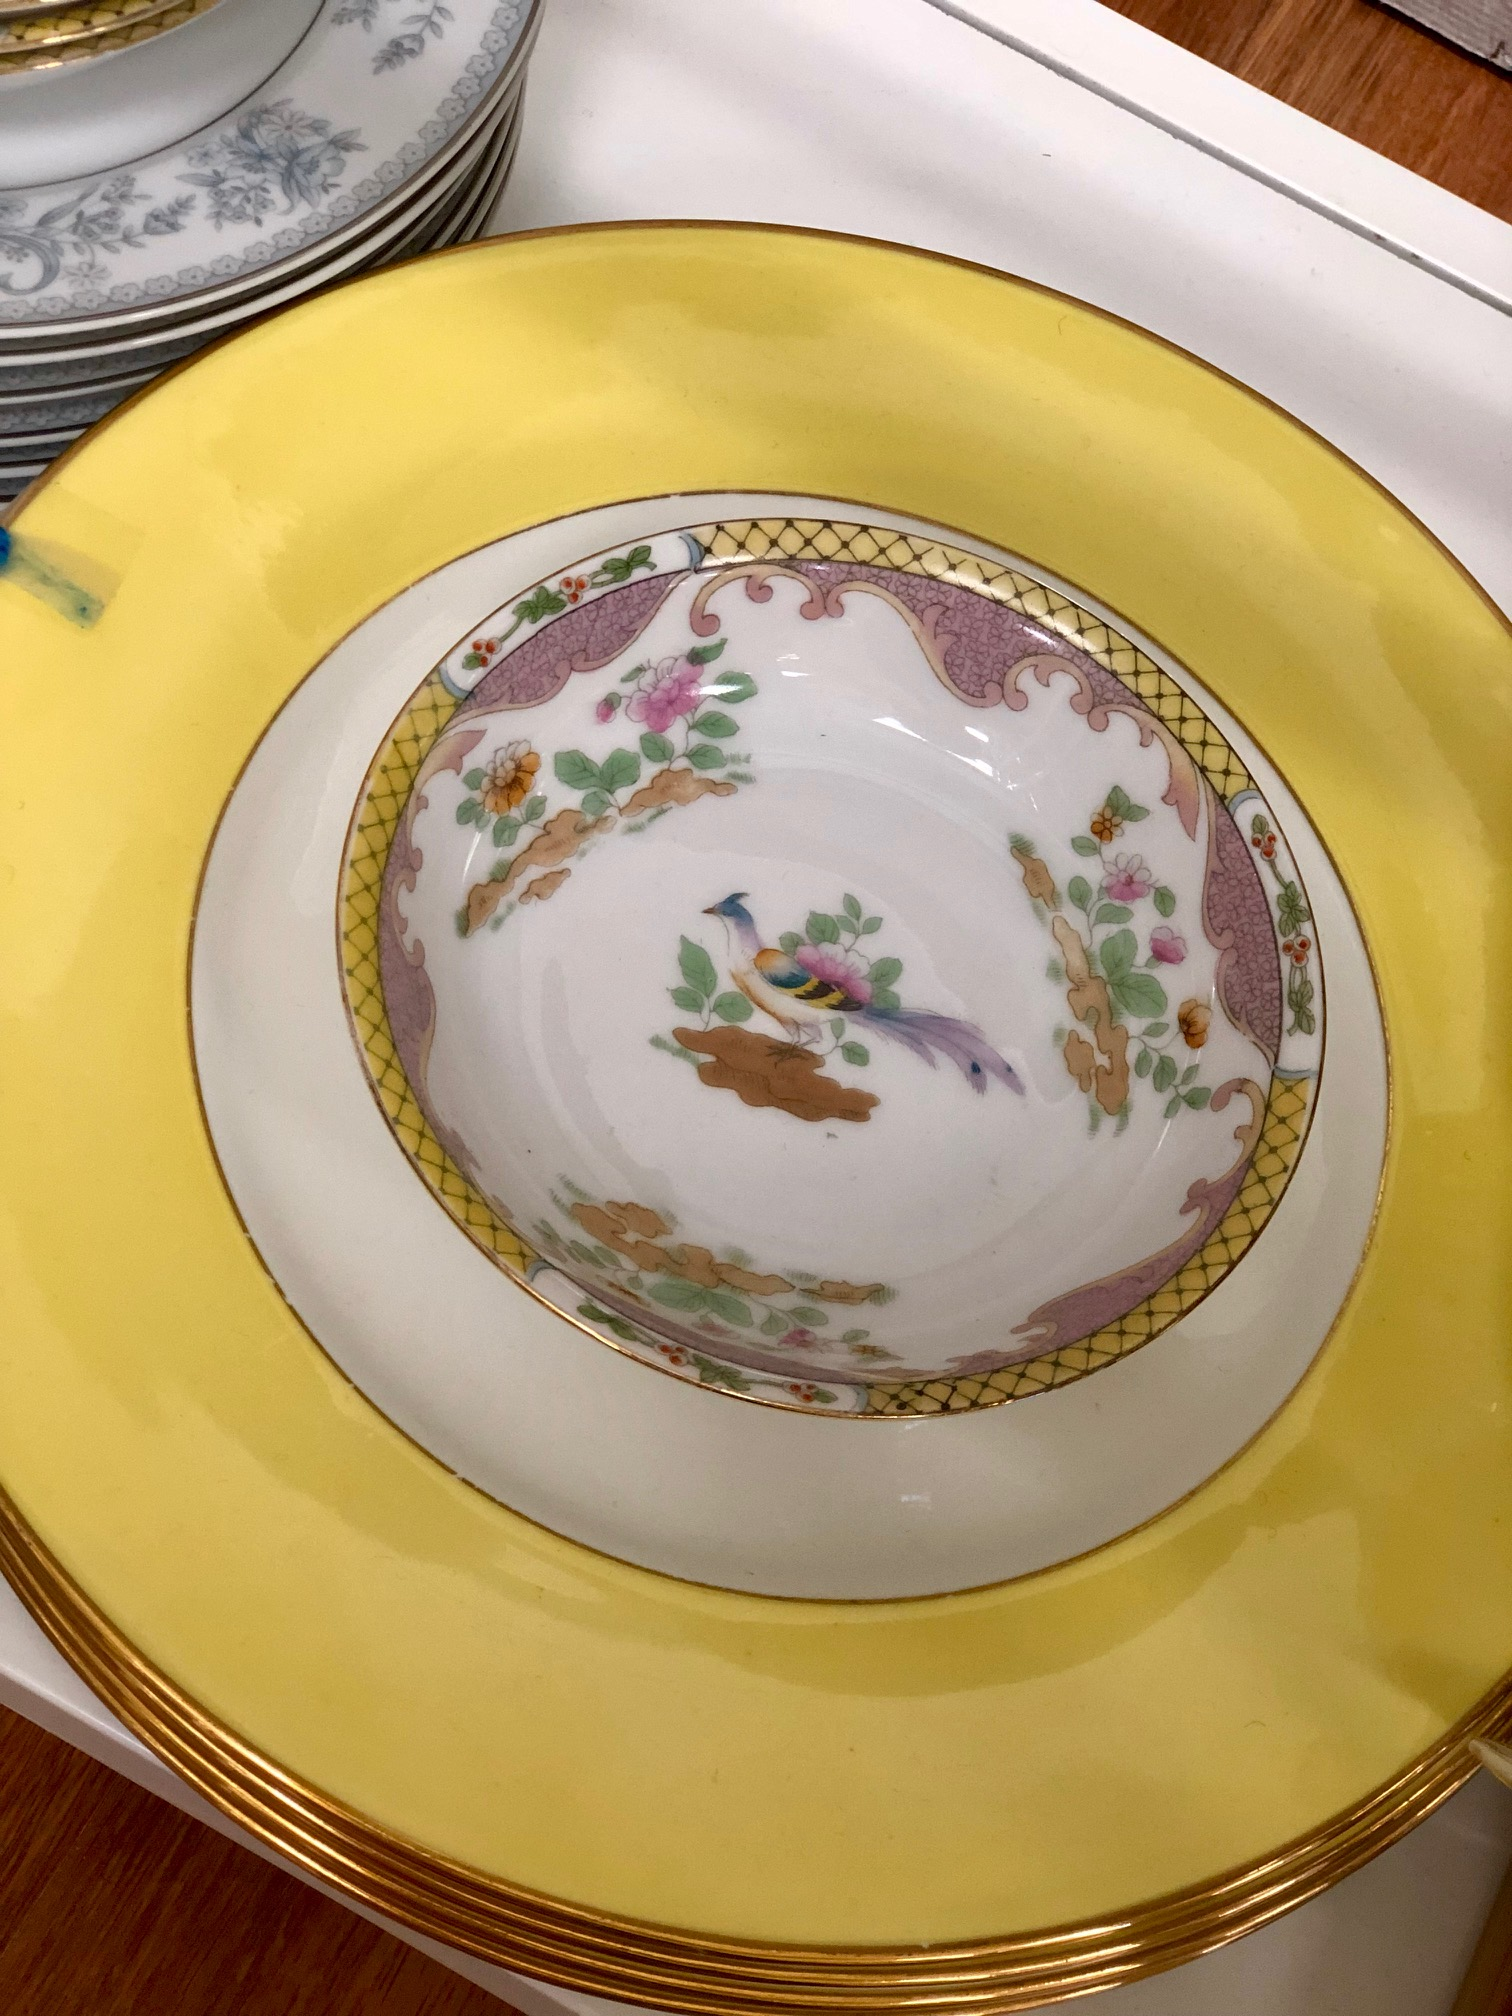 Hip at Grove   has a plethora of vintage china to set any table style you could want!